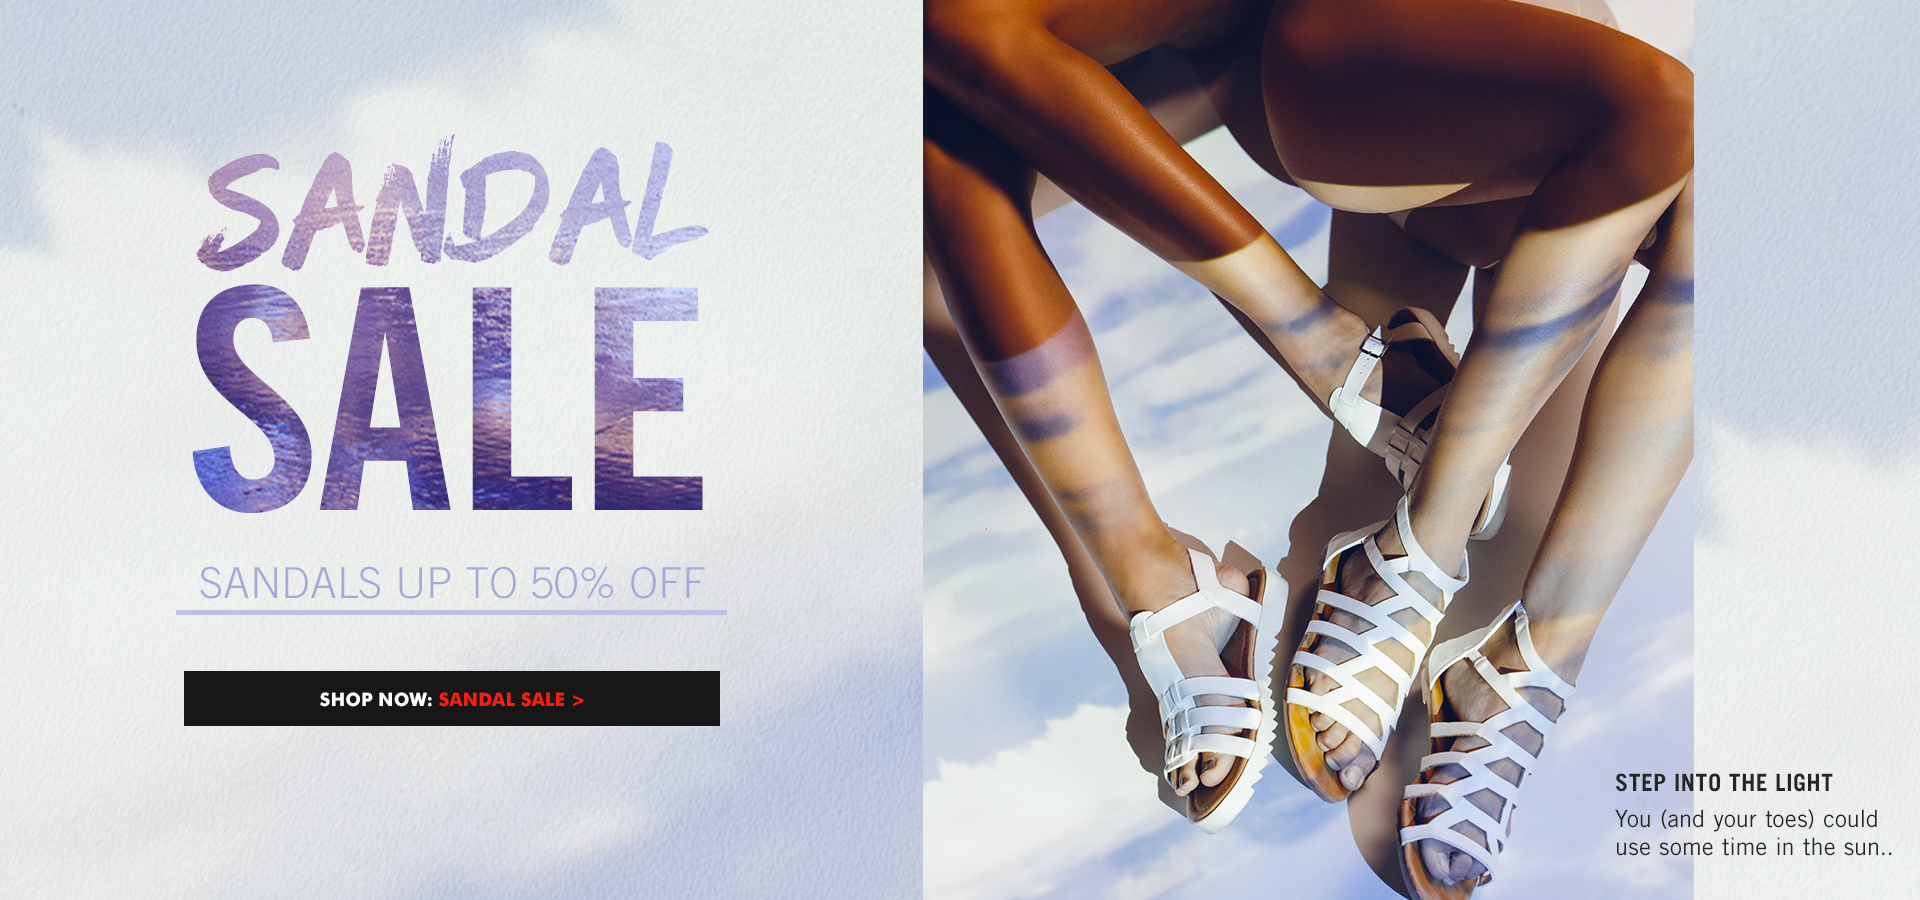 Sandals Sale: Up To 50% Off